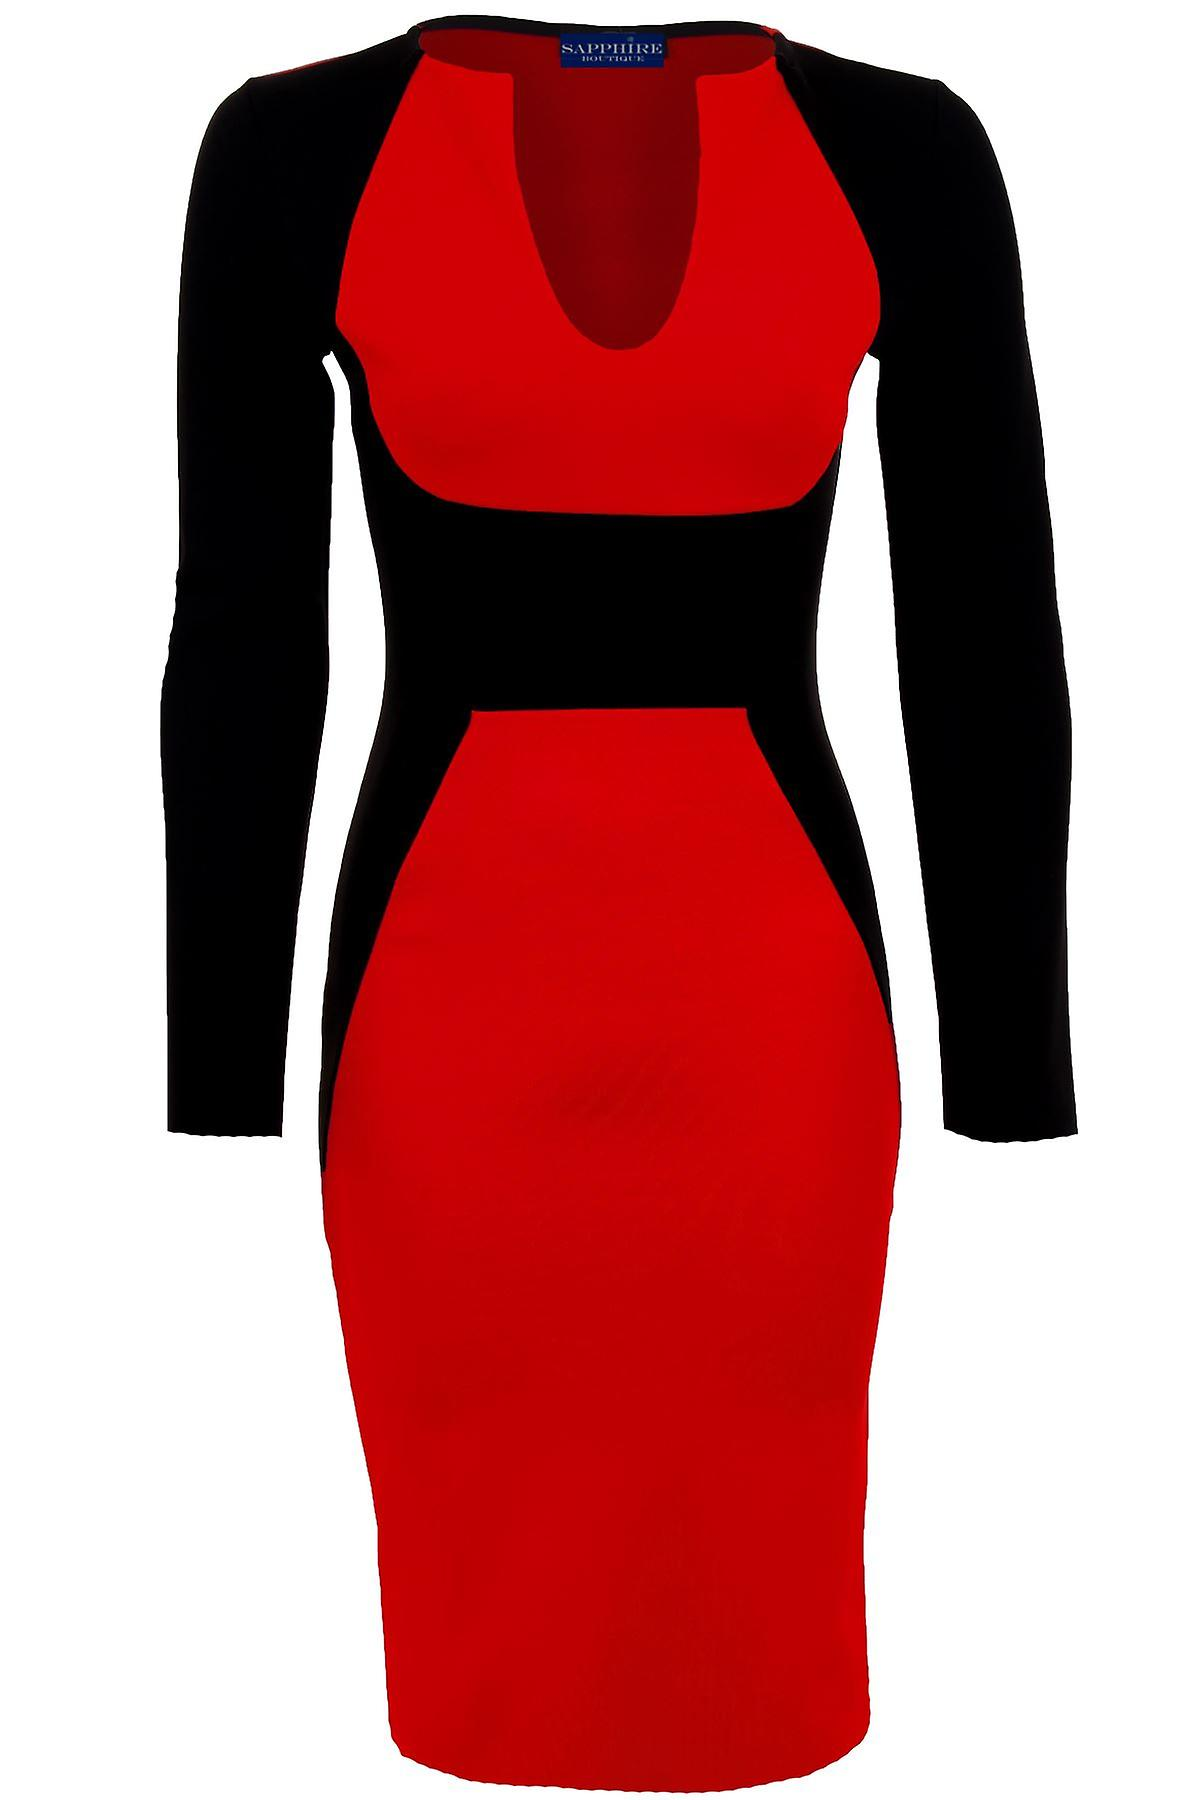 Ladies Long Sleeve V neck Black Contrast Midi Knee Length Womens Bodycon Party Dress